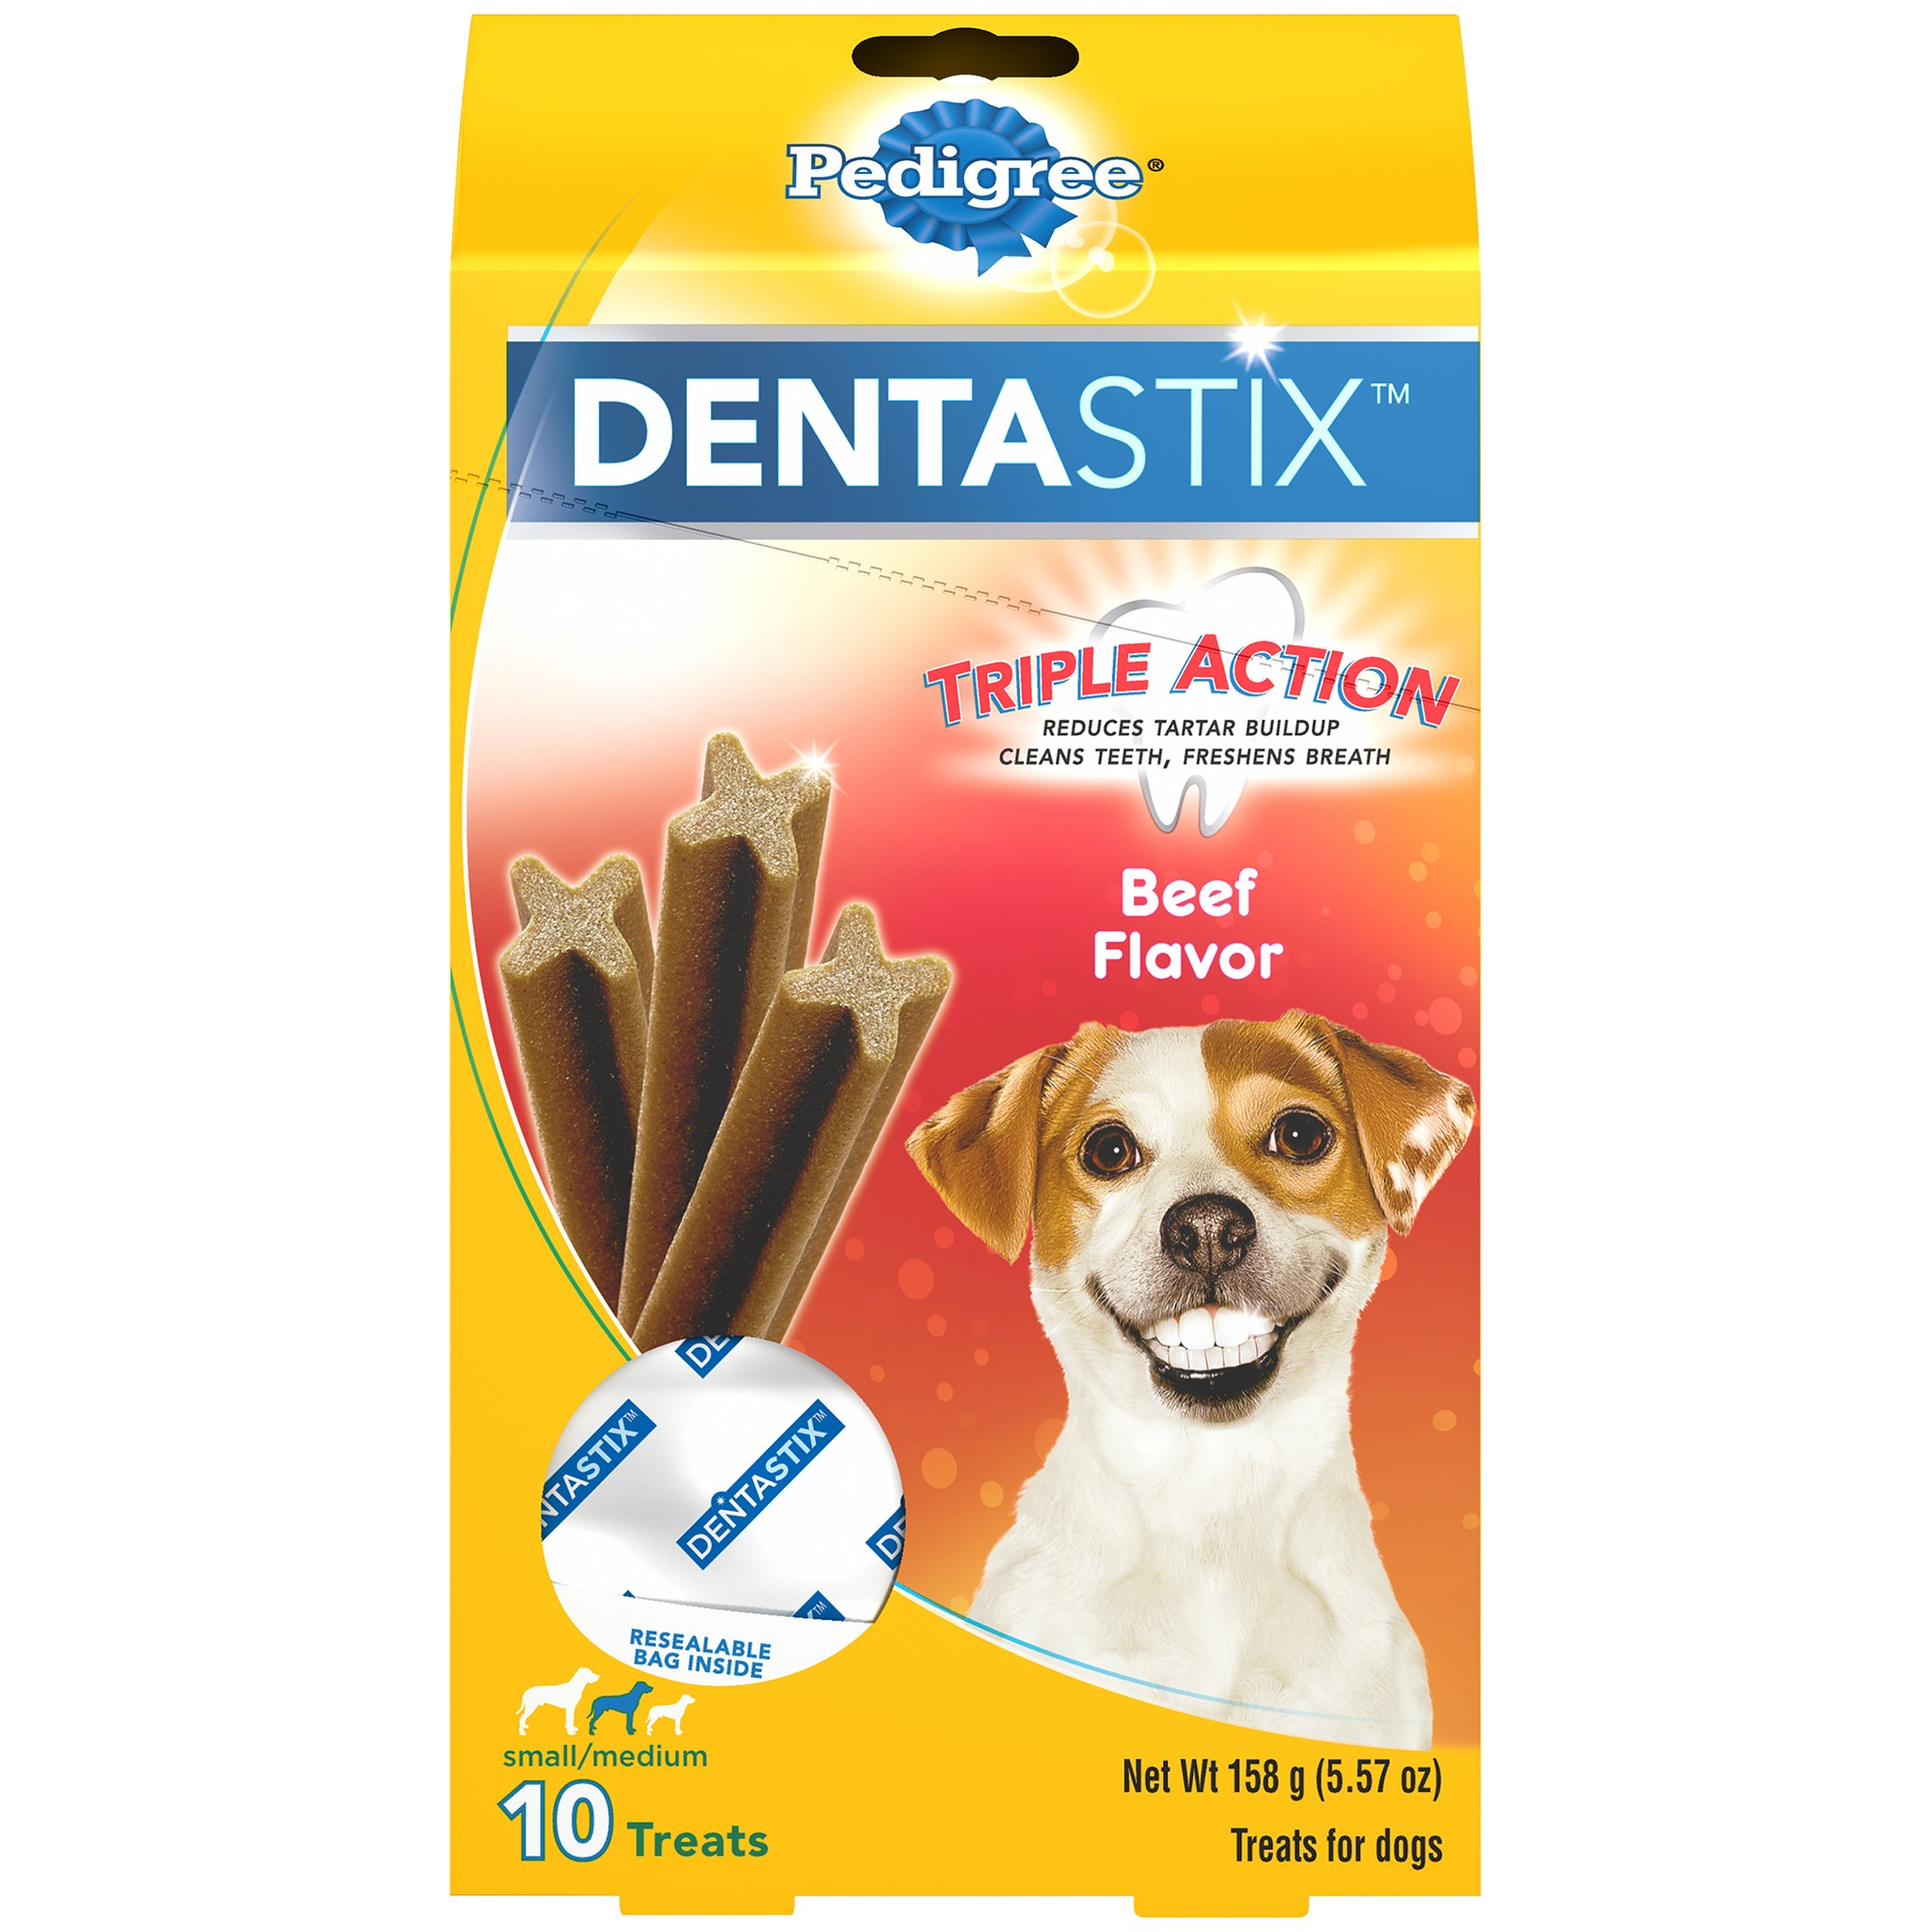 Pedigree Dentastix Small/Medium Beef Dog Treats, 10-Count